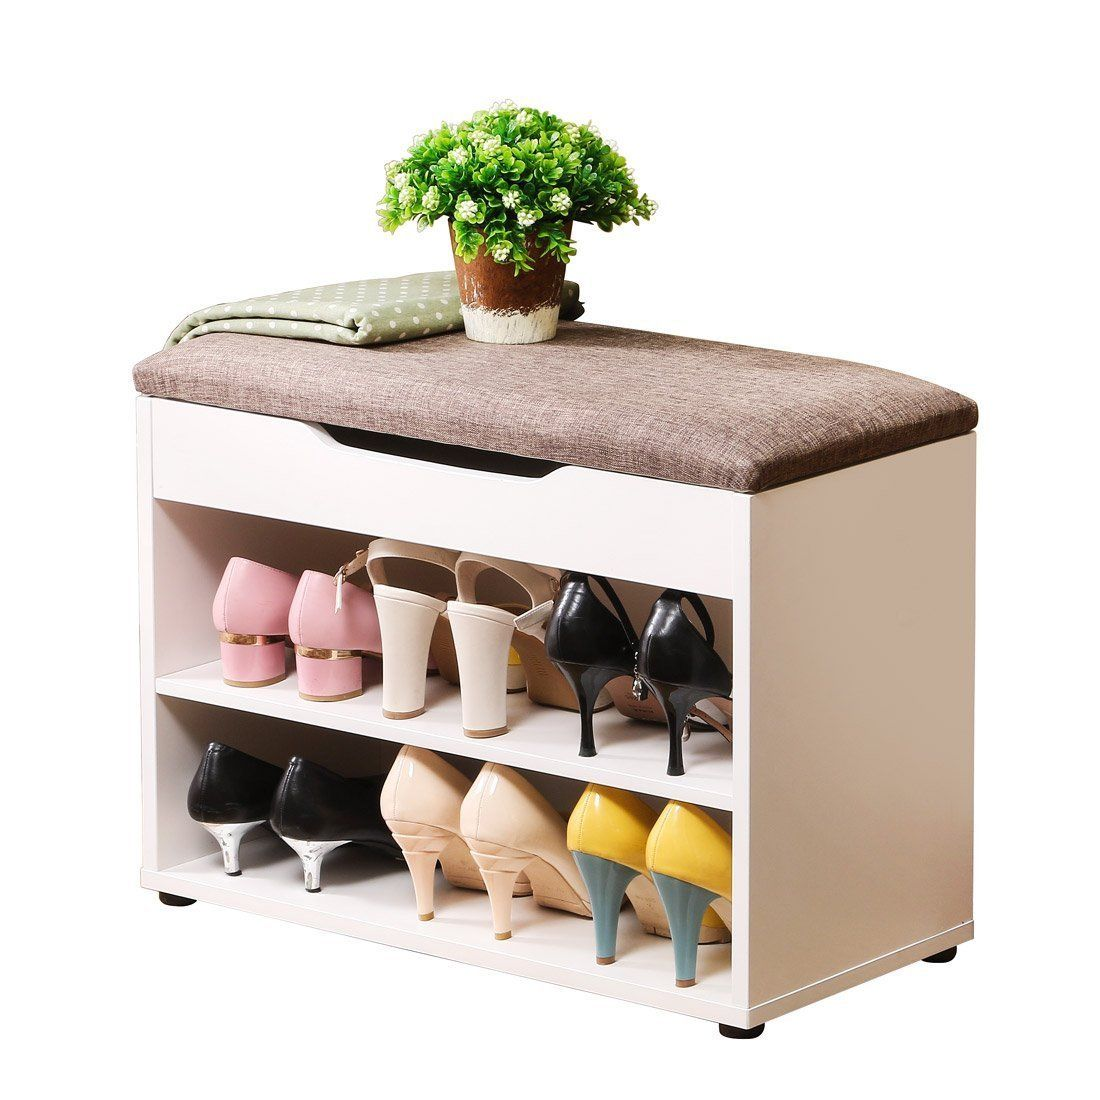 Hall Entryway Storage Bench 2-Tier Shoe Storage Cabinet Linen Top Sofa Style New Wooden